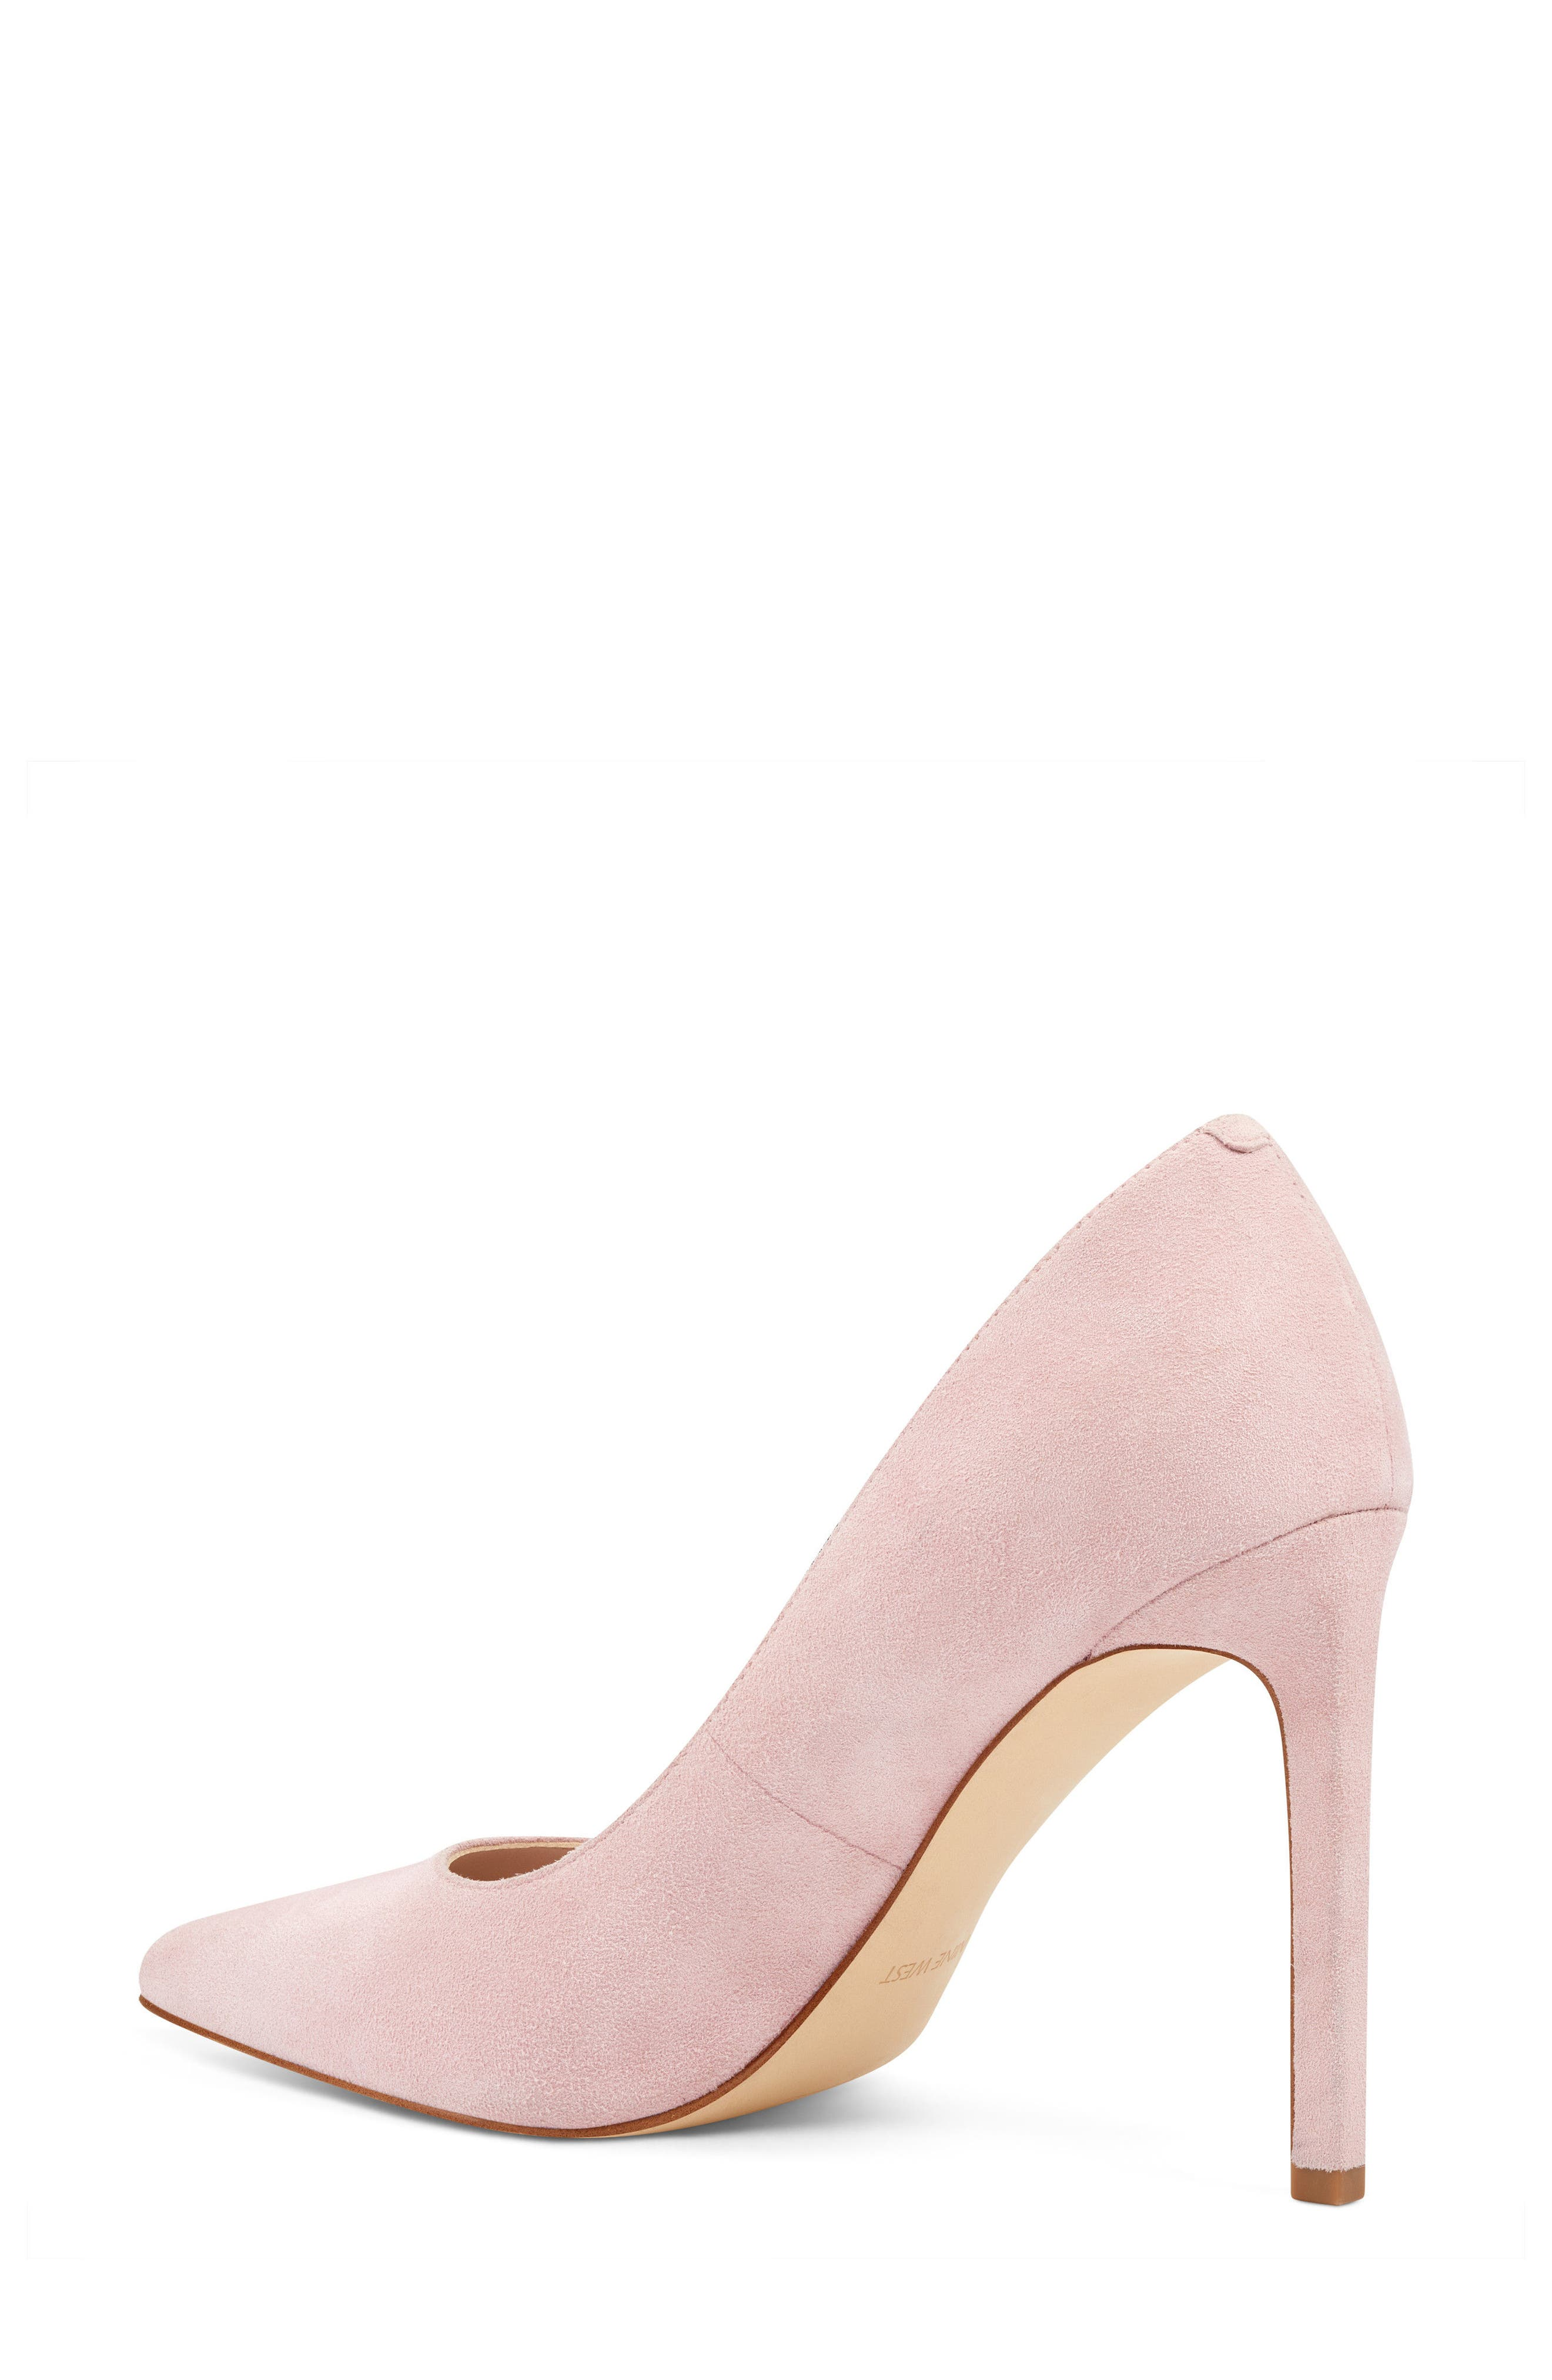 'Tatiana' Pointy Toe Pump,                             Alternate thumbnail 2, color,                             LIGHT PINK SUEDE